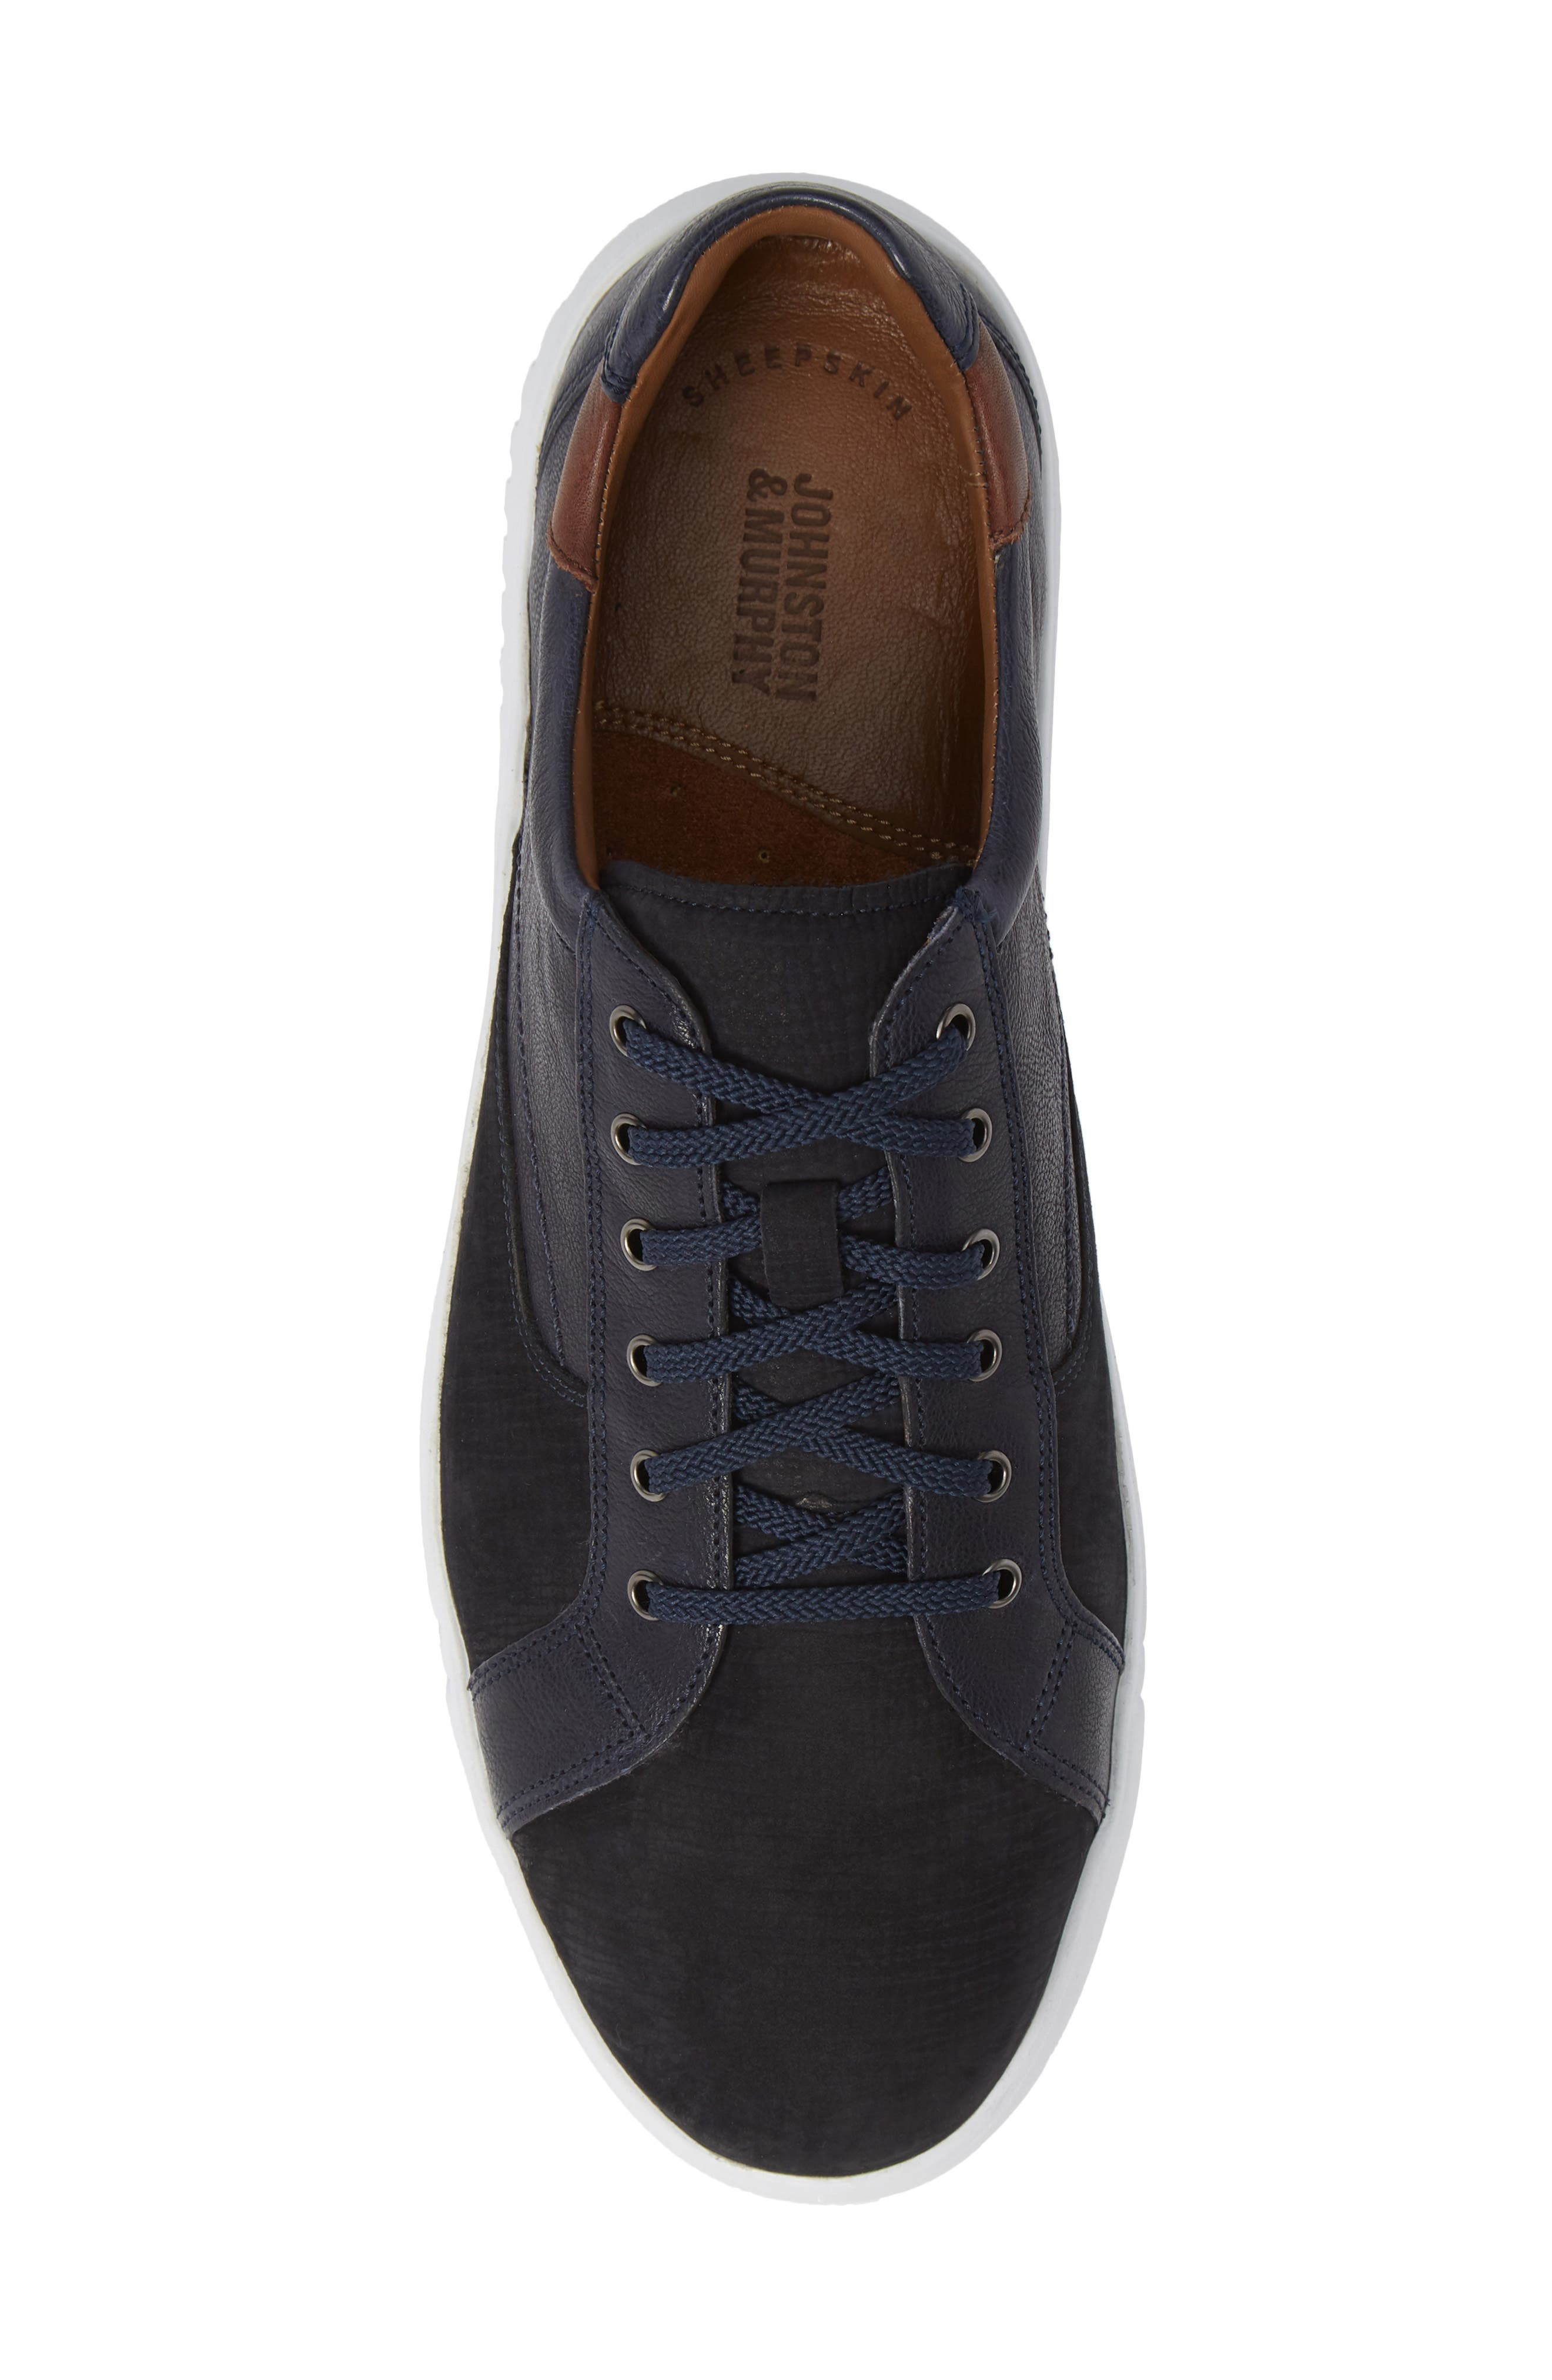 McFarland Sneaker,                             Alternate thumbnail 5, color,                             NAVY NUBUCK